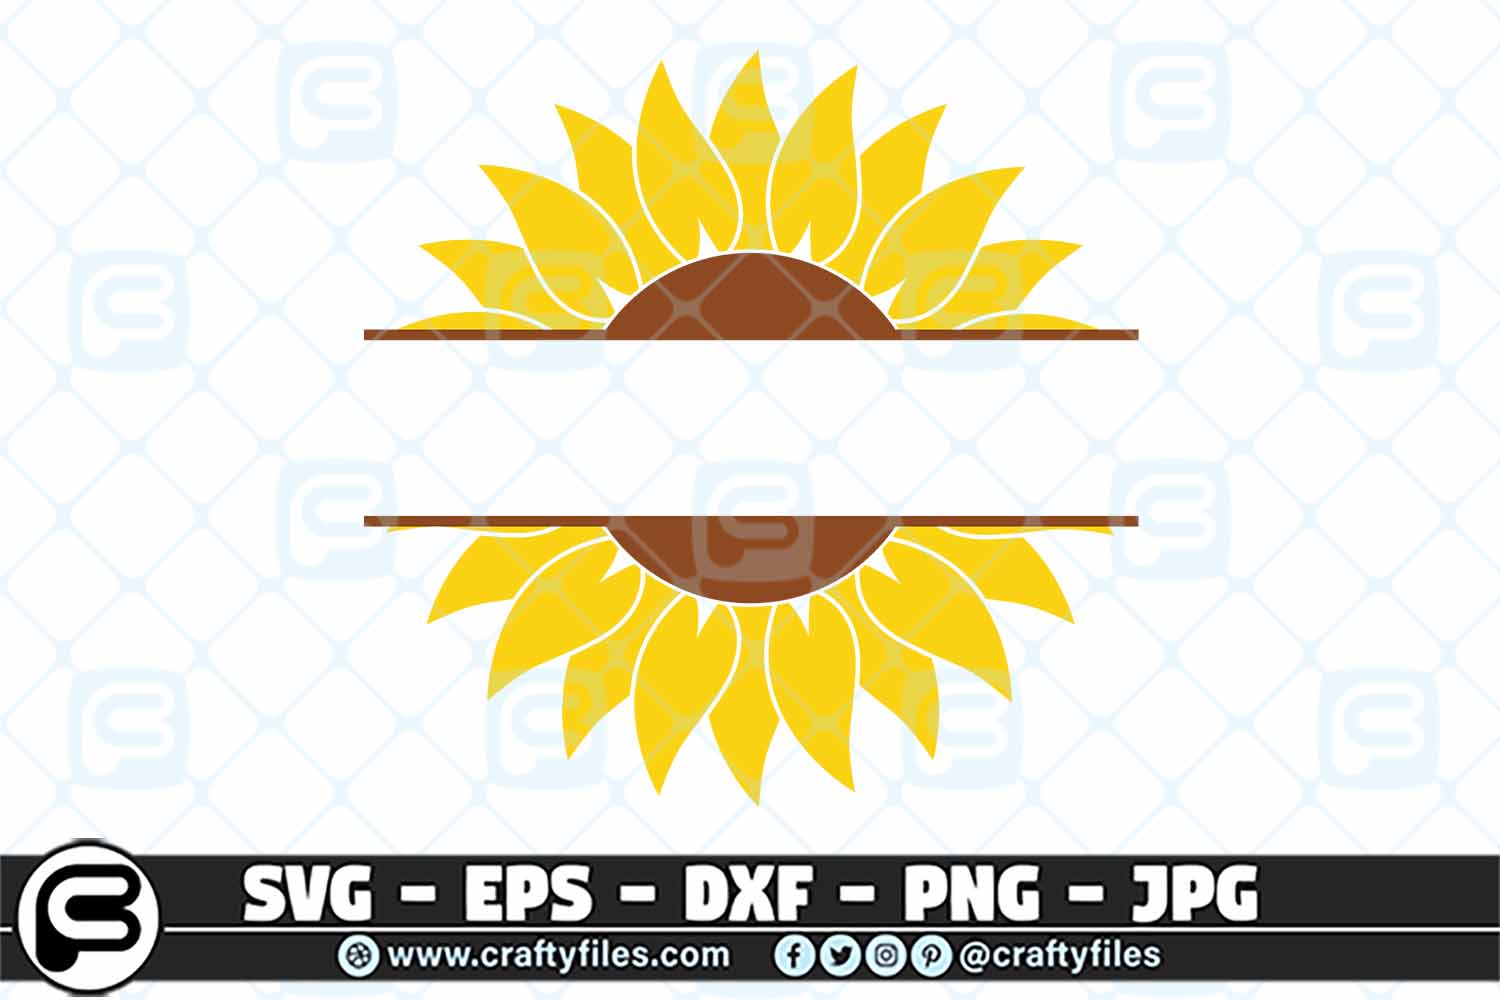 Download Free Sunflower Yellow With Cutom Text Graphic By Crafty Files for Cricut Explore, Silhouette and other cutting machines.